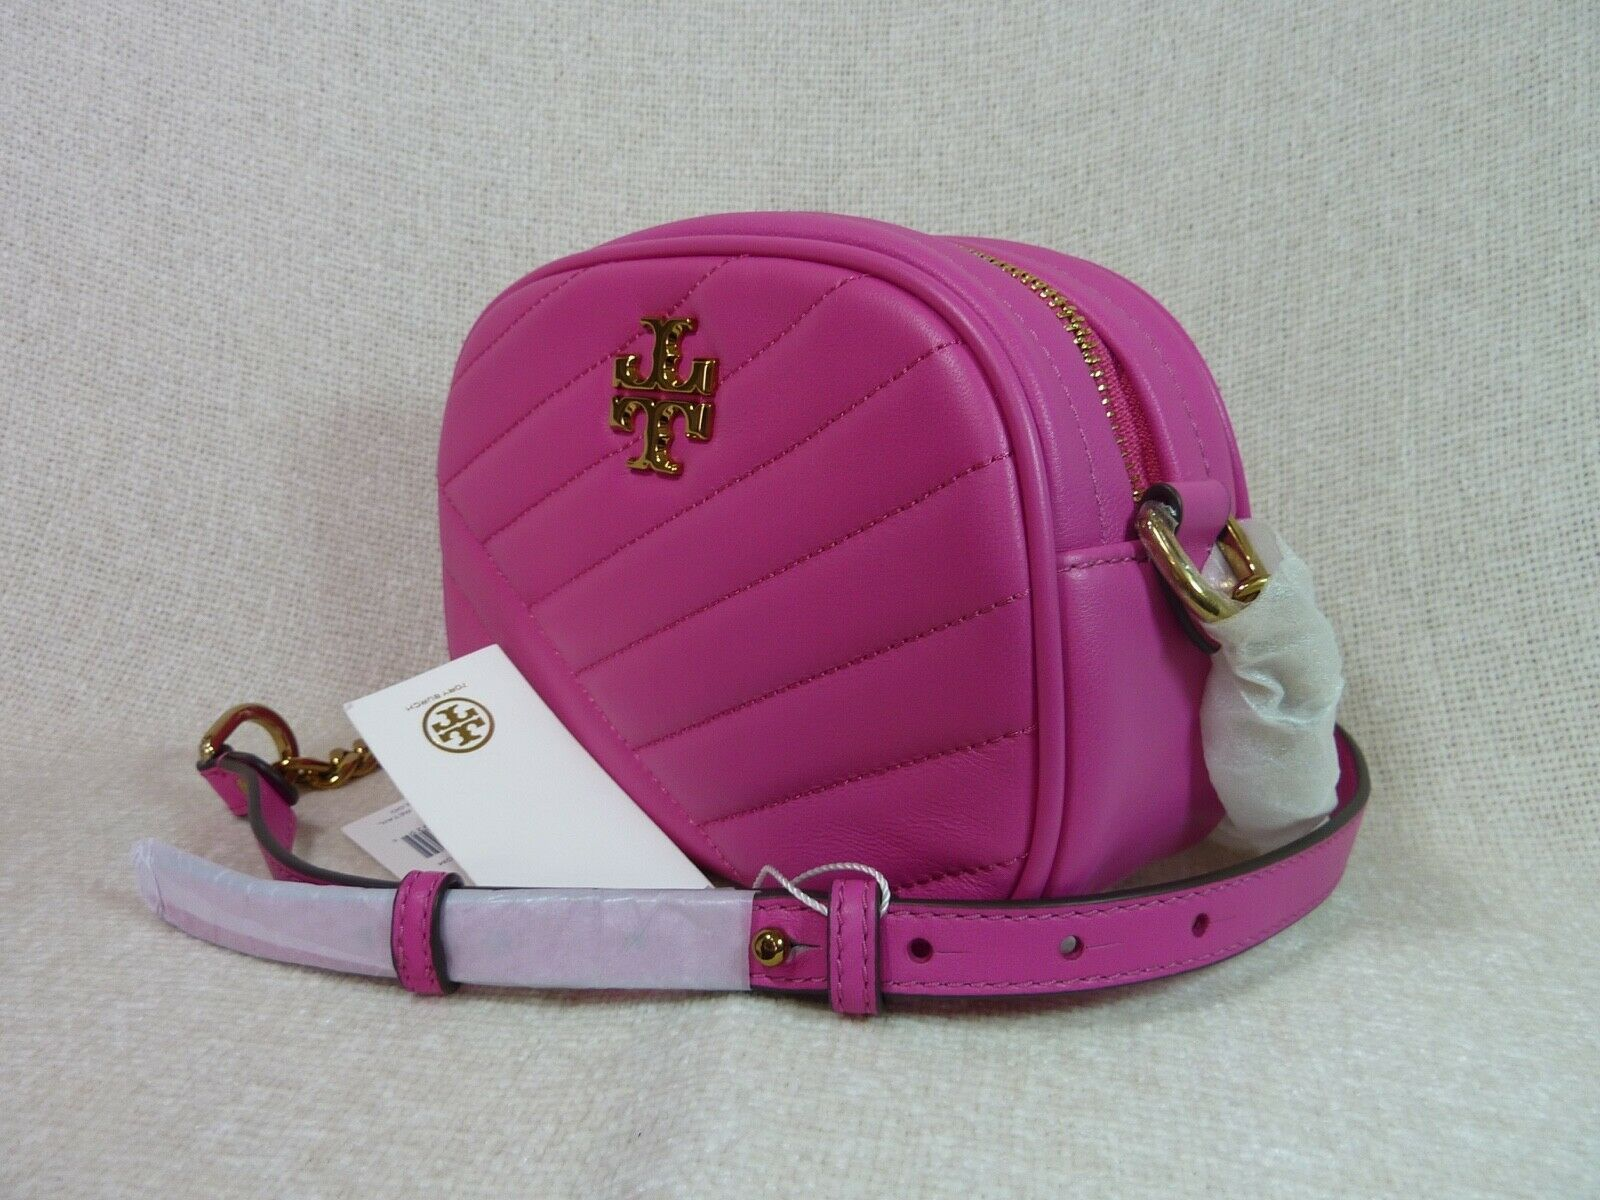 NWT Tory Burch Crazy Pink Kira Chevron Small Camera Bag $358 image 2